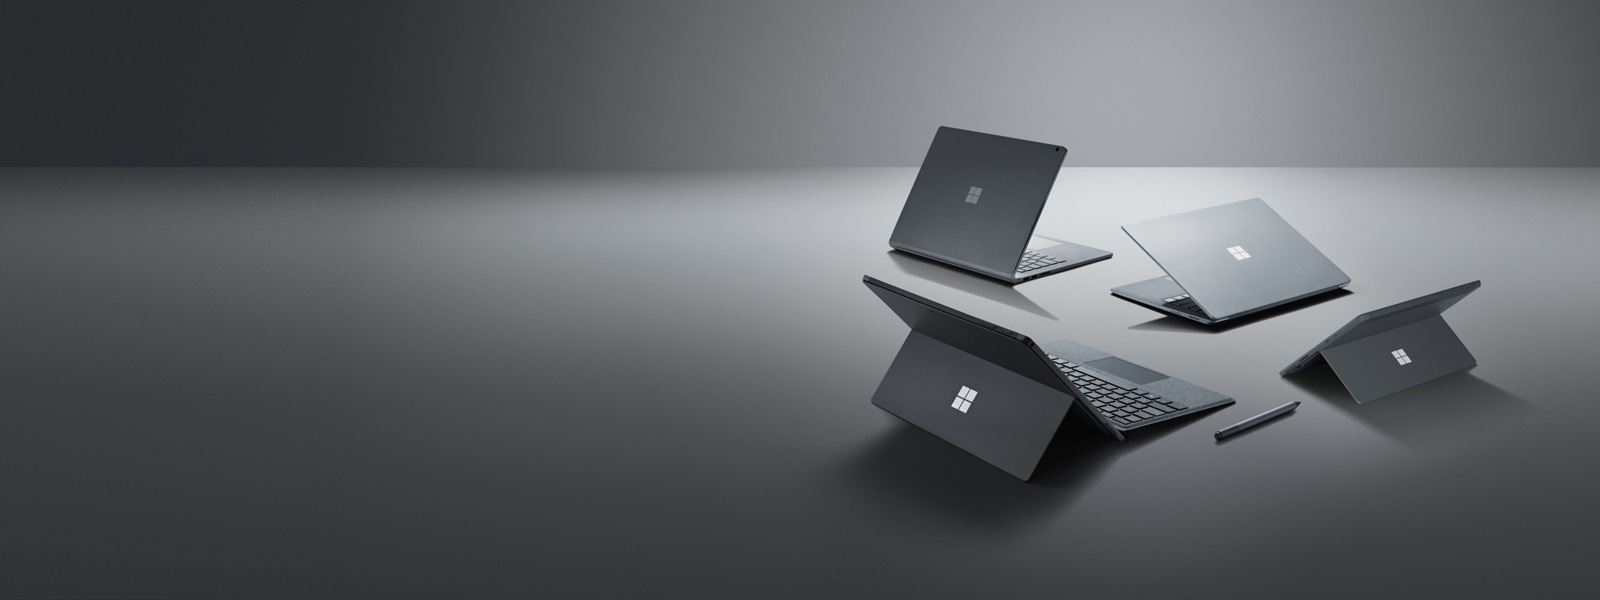 Surface Family – Surface Go and Surface Pro